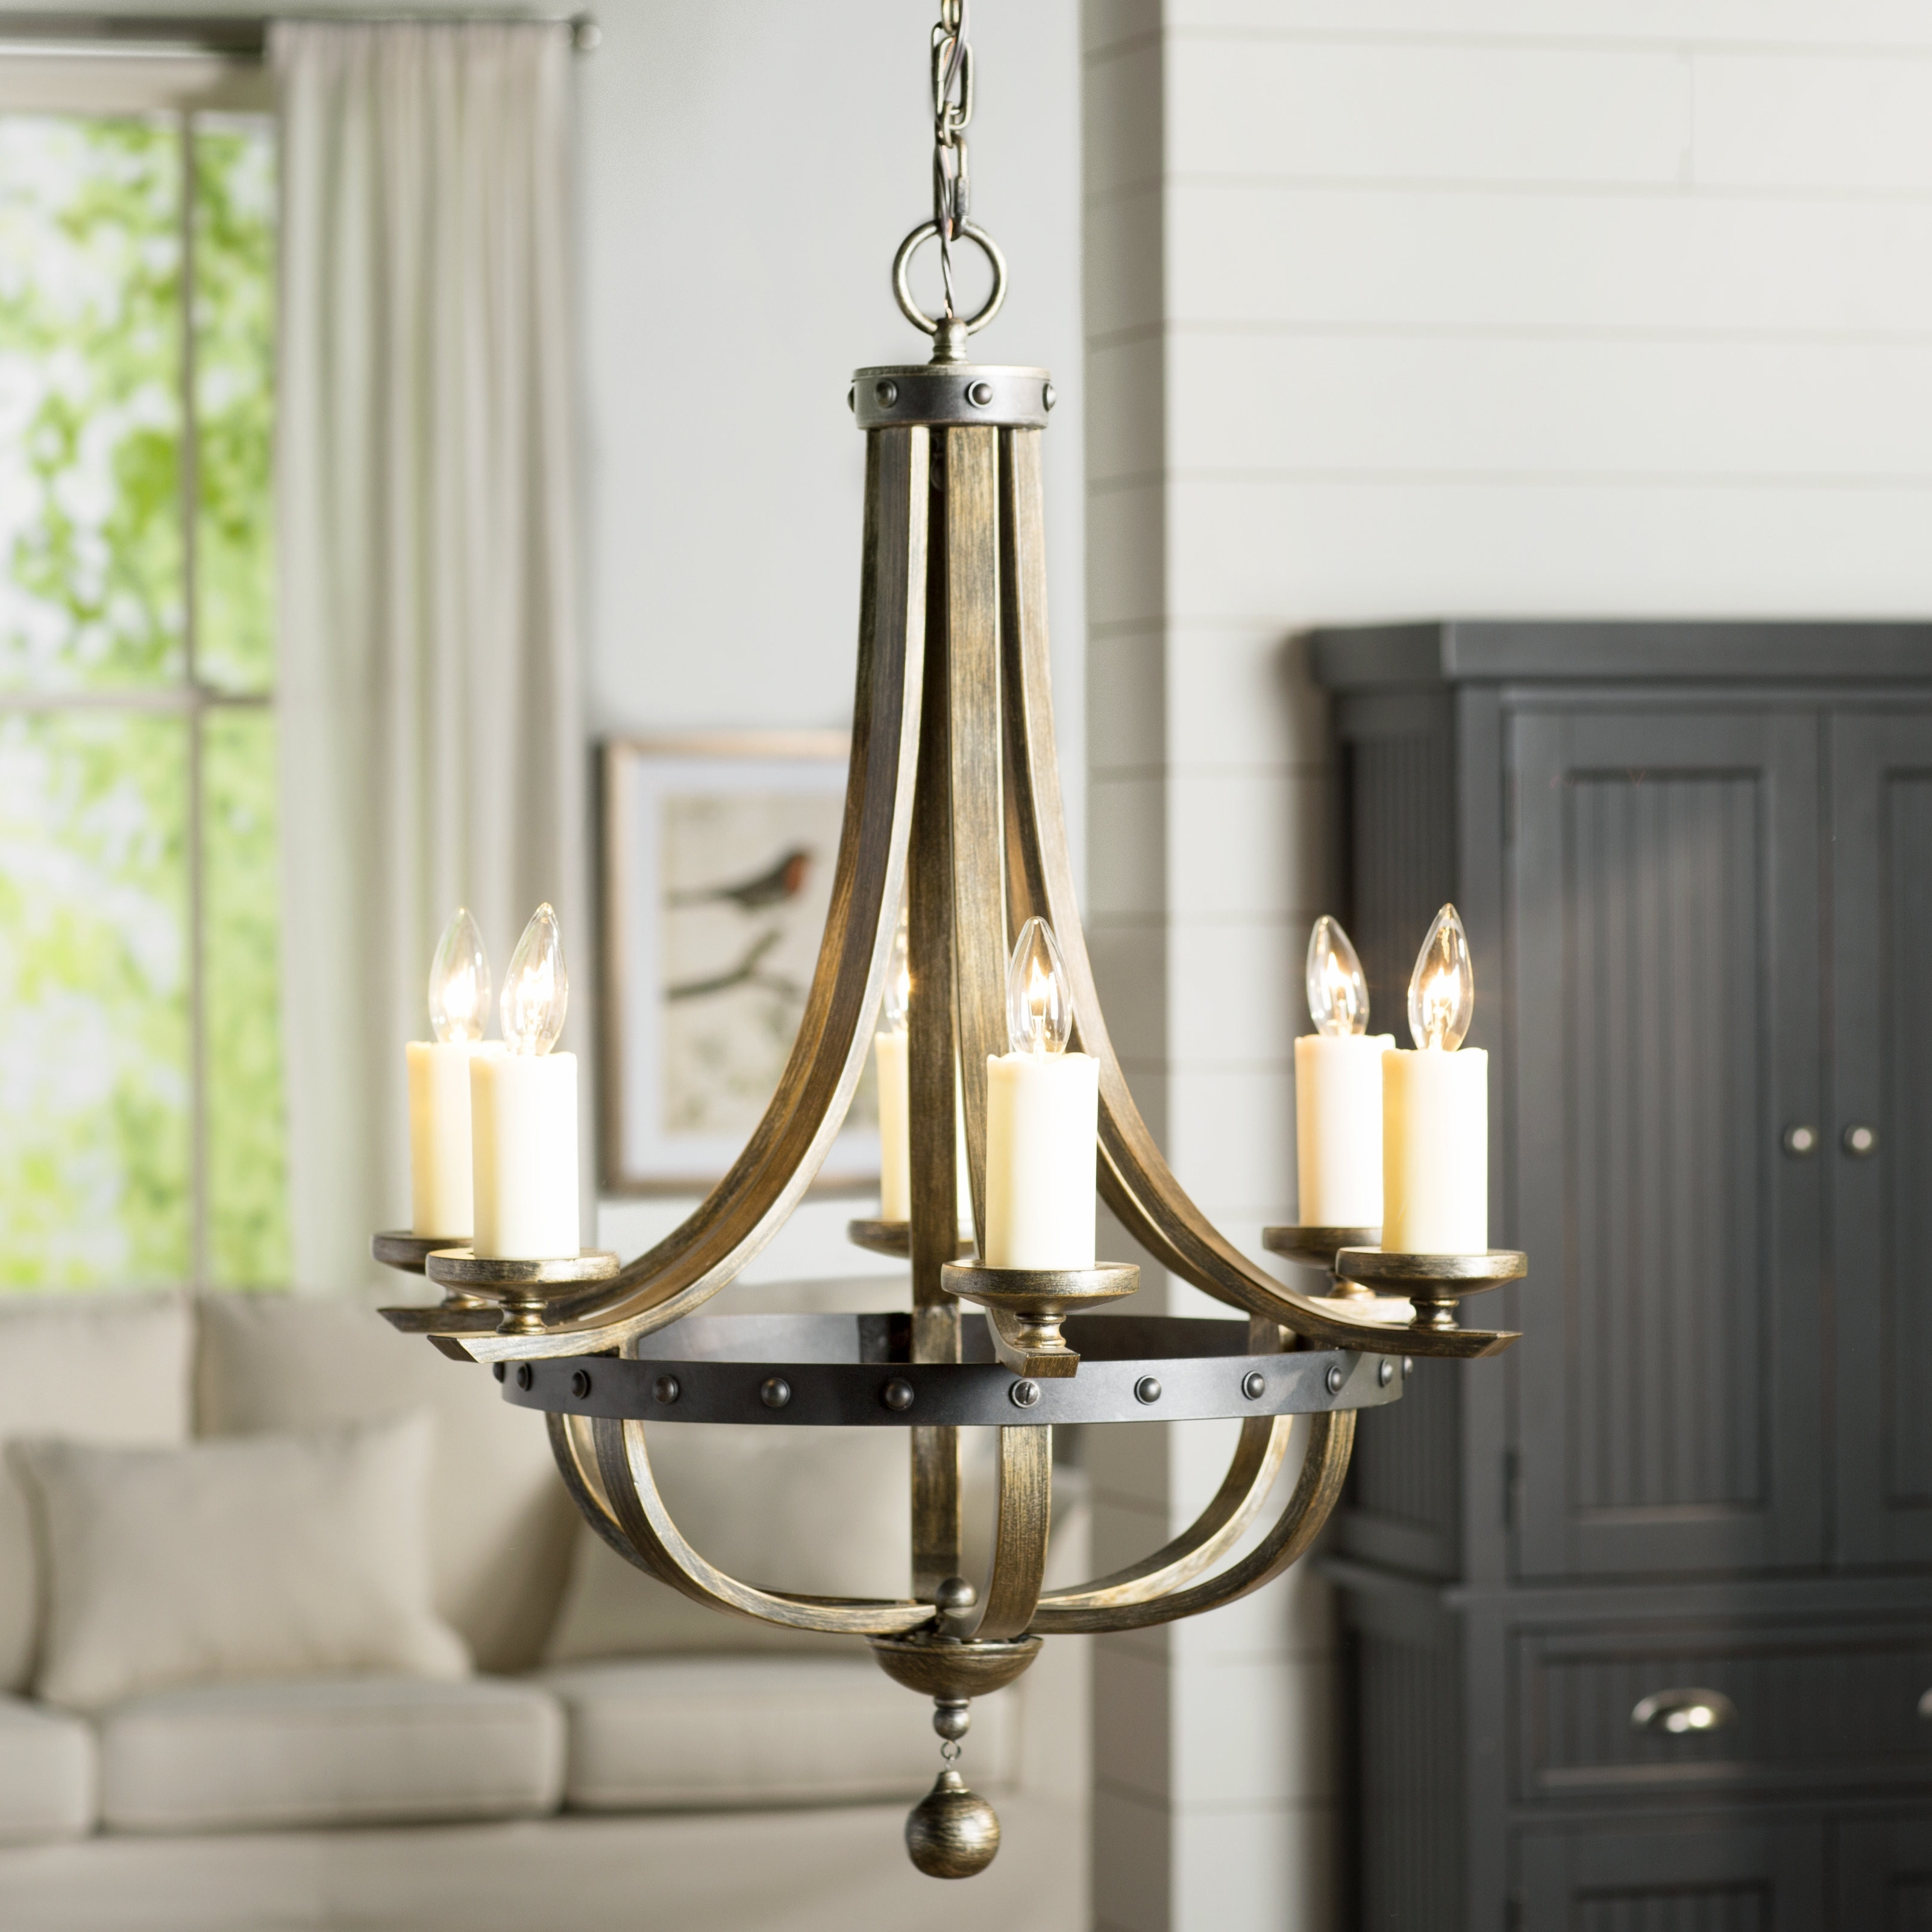 Most Popular Chandeliers : Hanging Candle Chandelier Luxury Wood Chandeliers You Inside Hanging Candle Chandeliers (View 15 of 15)